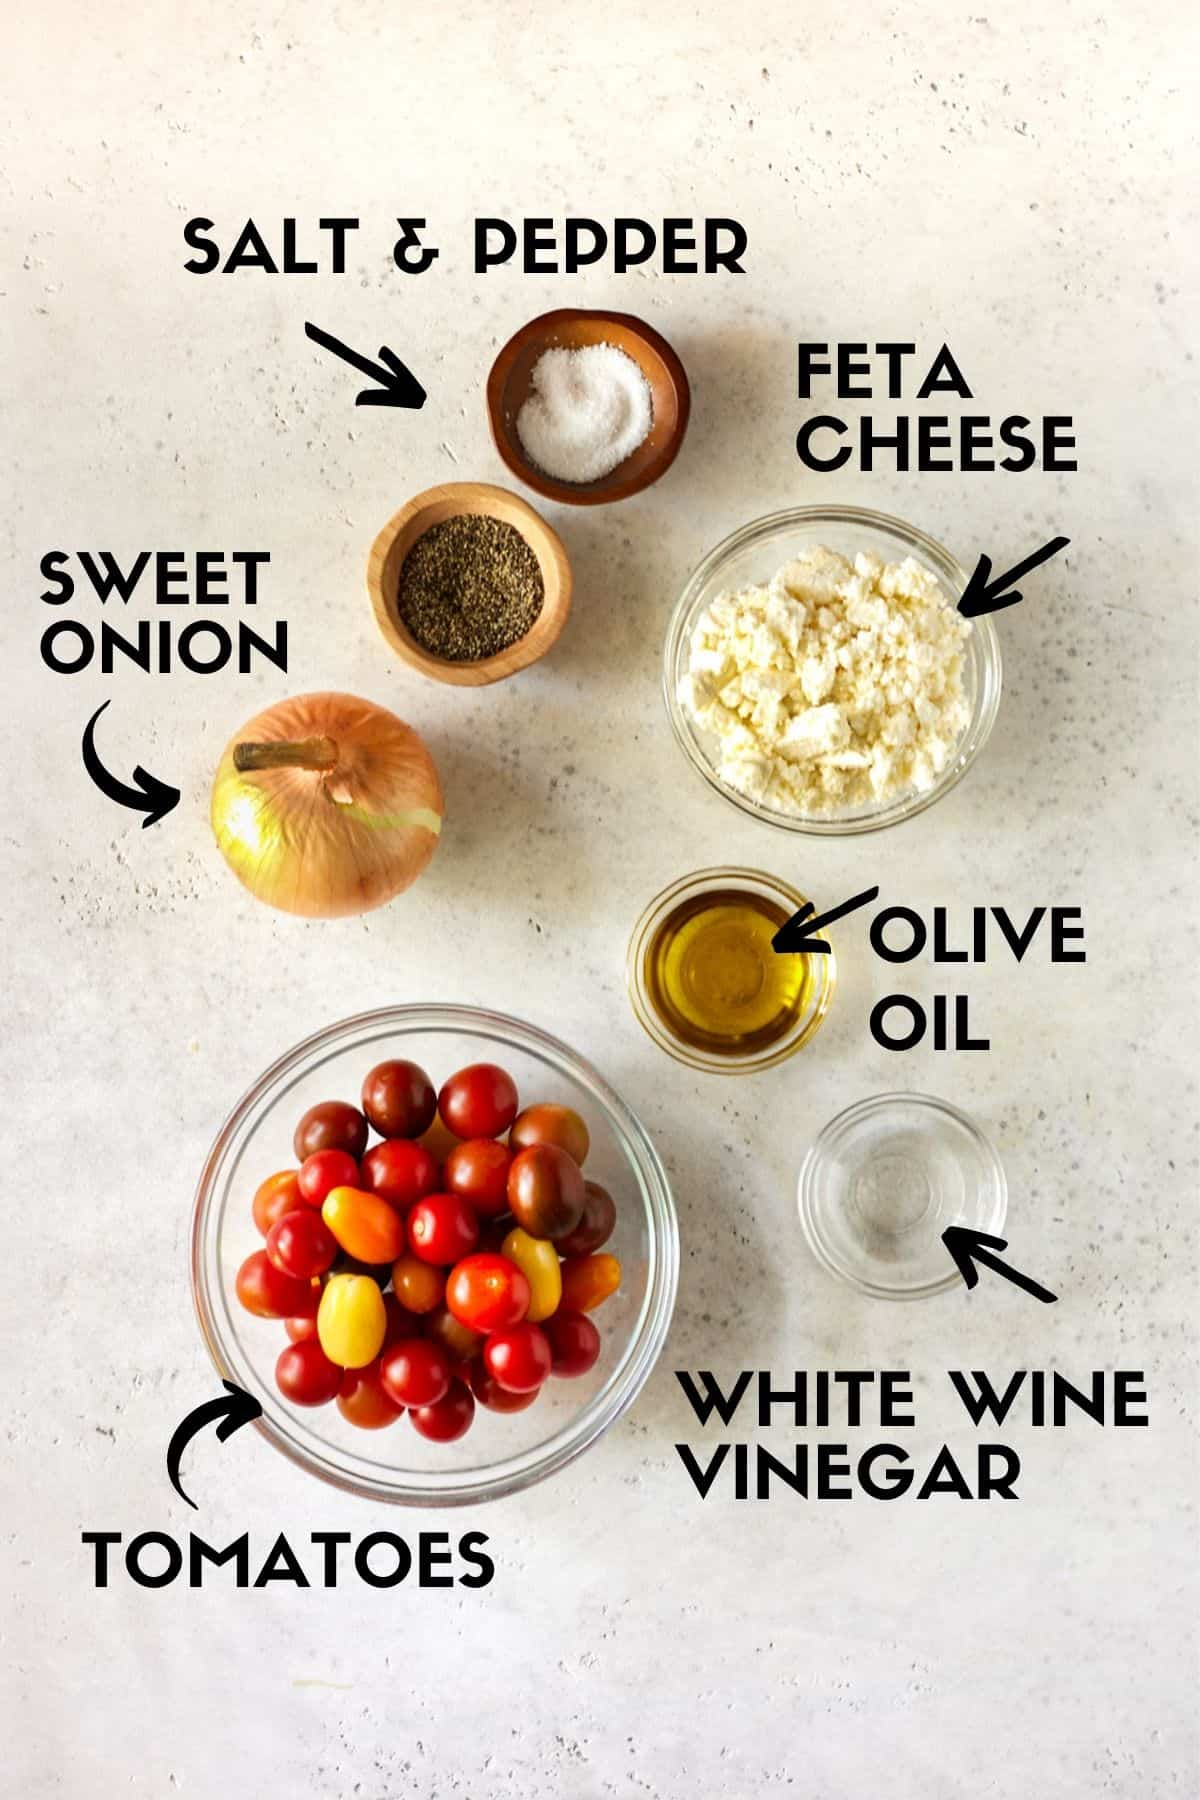 Ingredients for Cherry Tomato Salad including tomatoes, onion, feta cheese and vinegar.